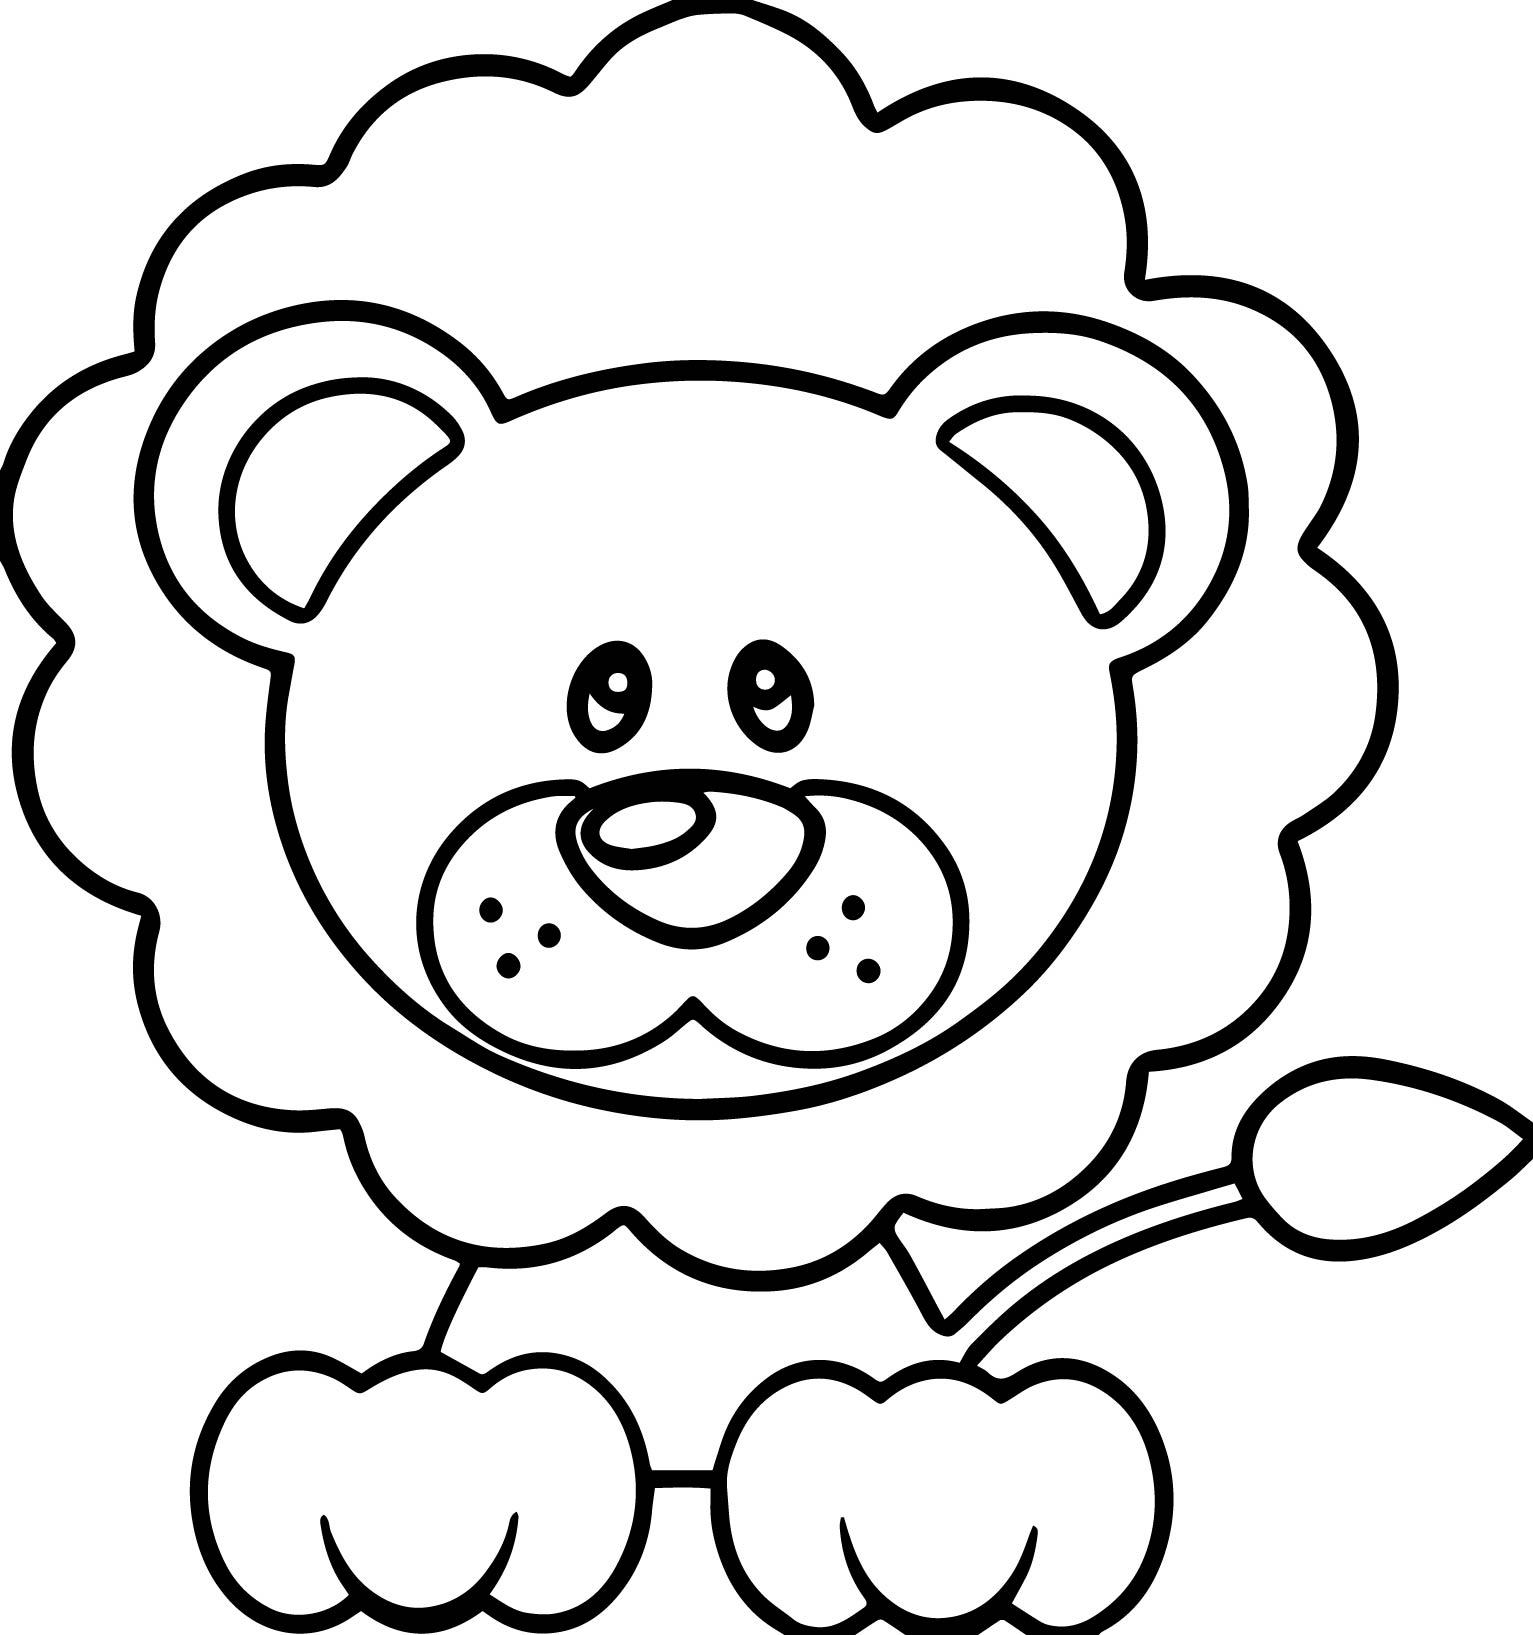 A Image Of A Lion And Lamb Coloring